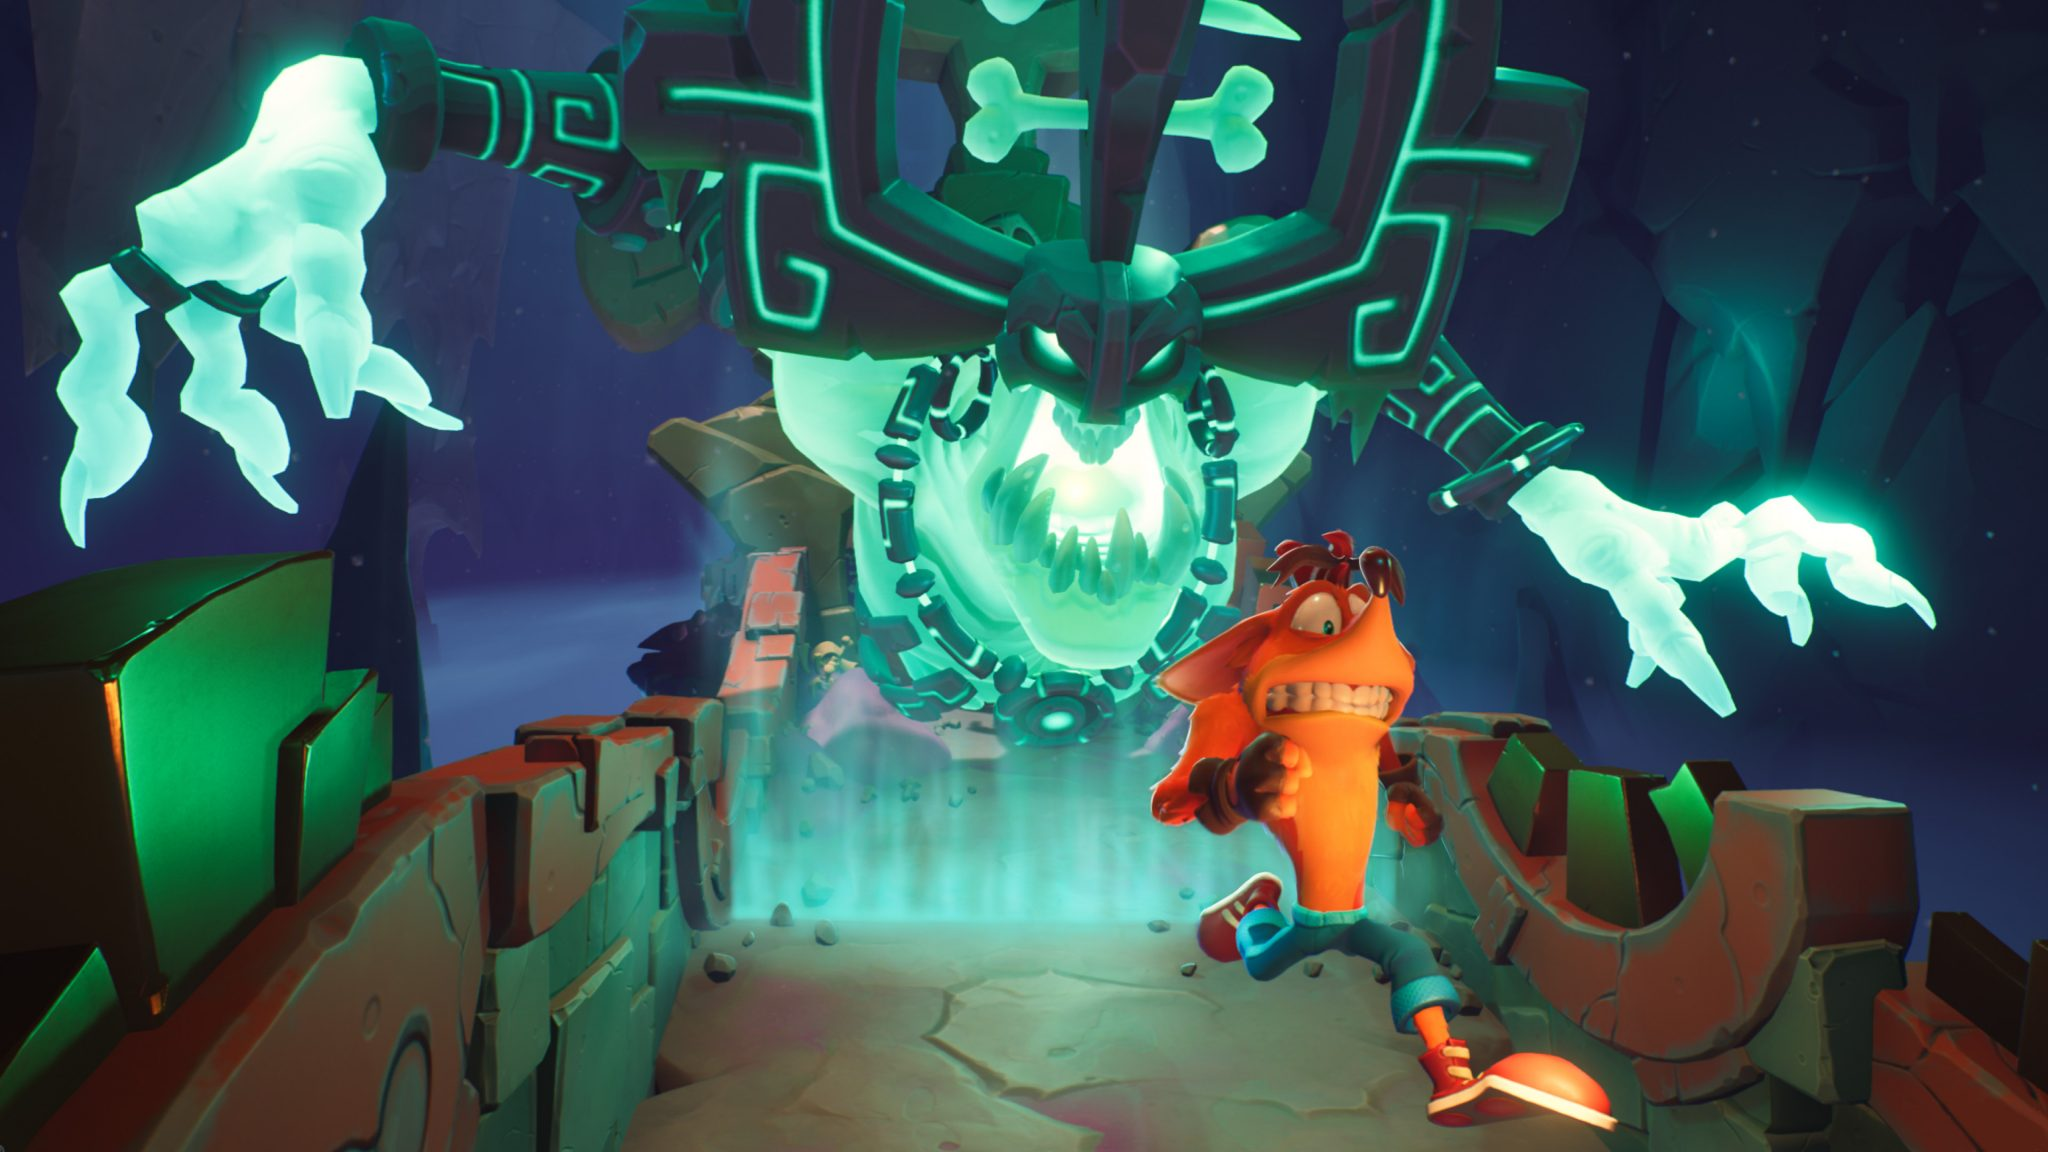 Crash Bandicoot 4 Formally Announced, Coming this October